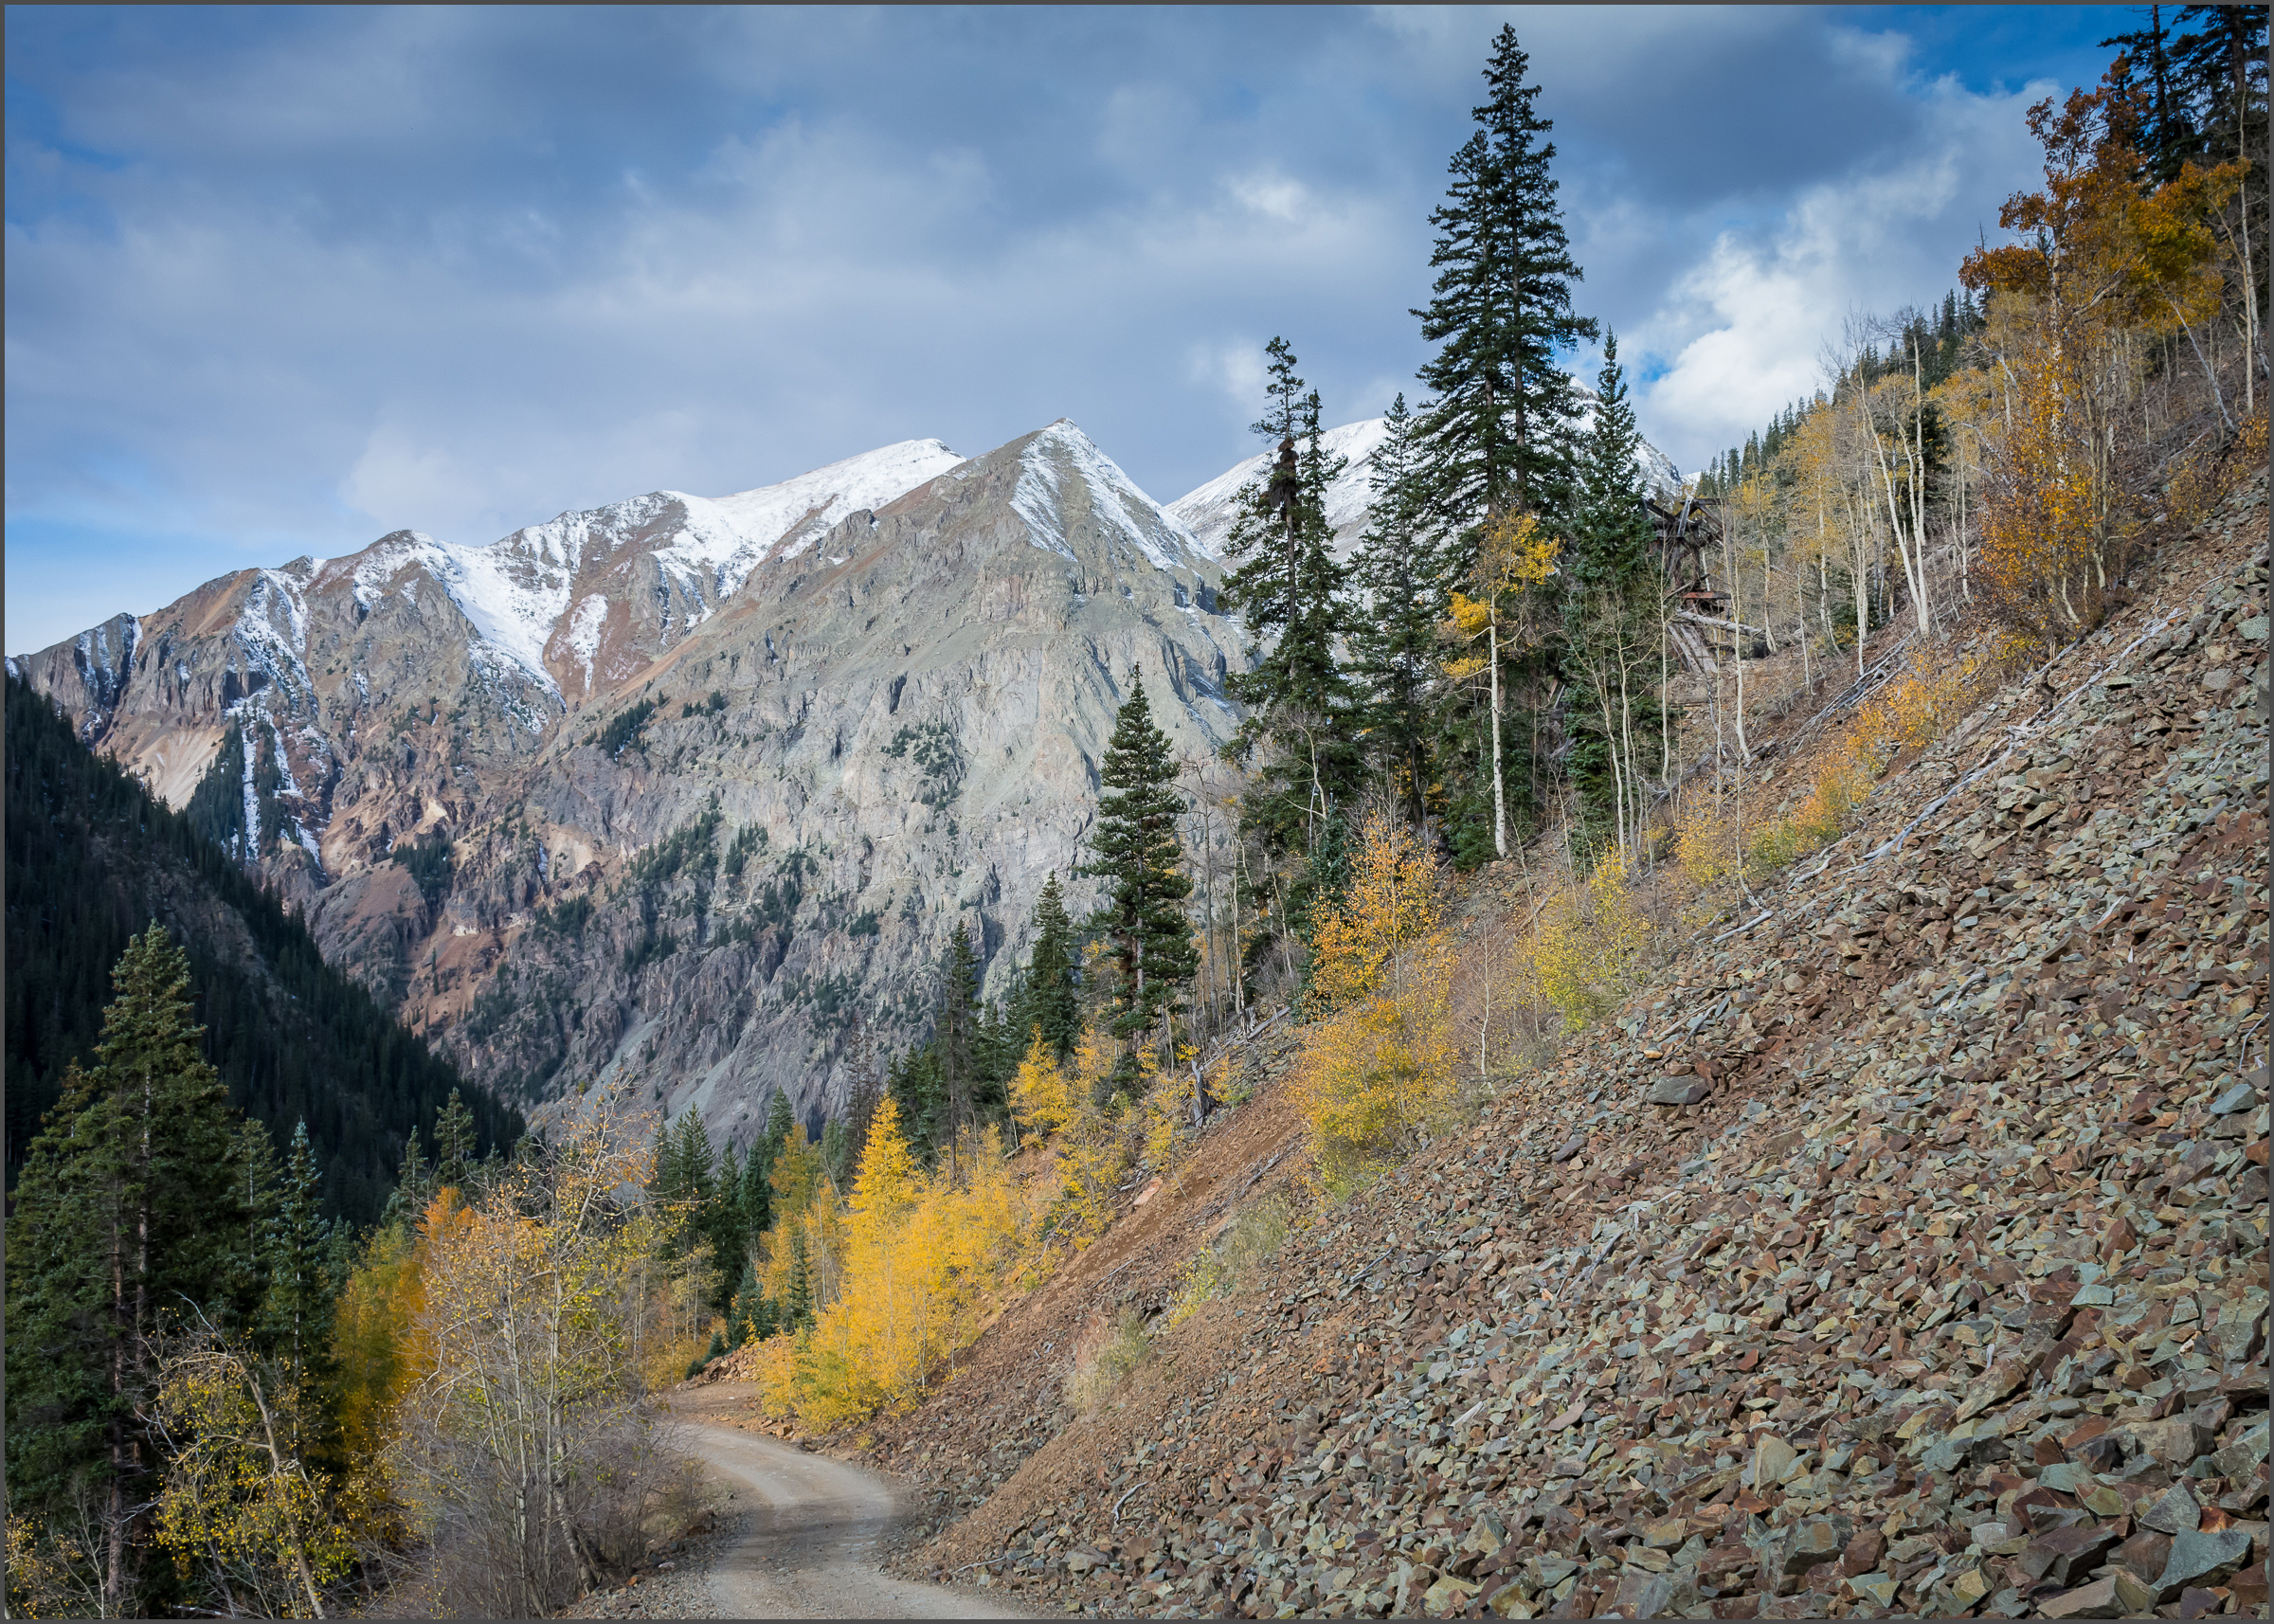 'Road to Silverton' received First Place in the 'Enhanced' division.